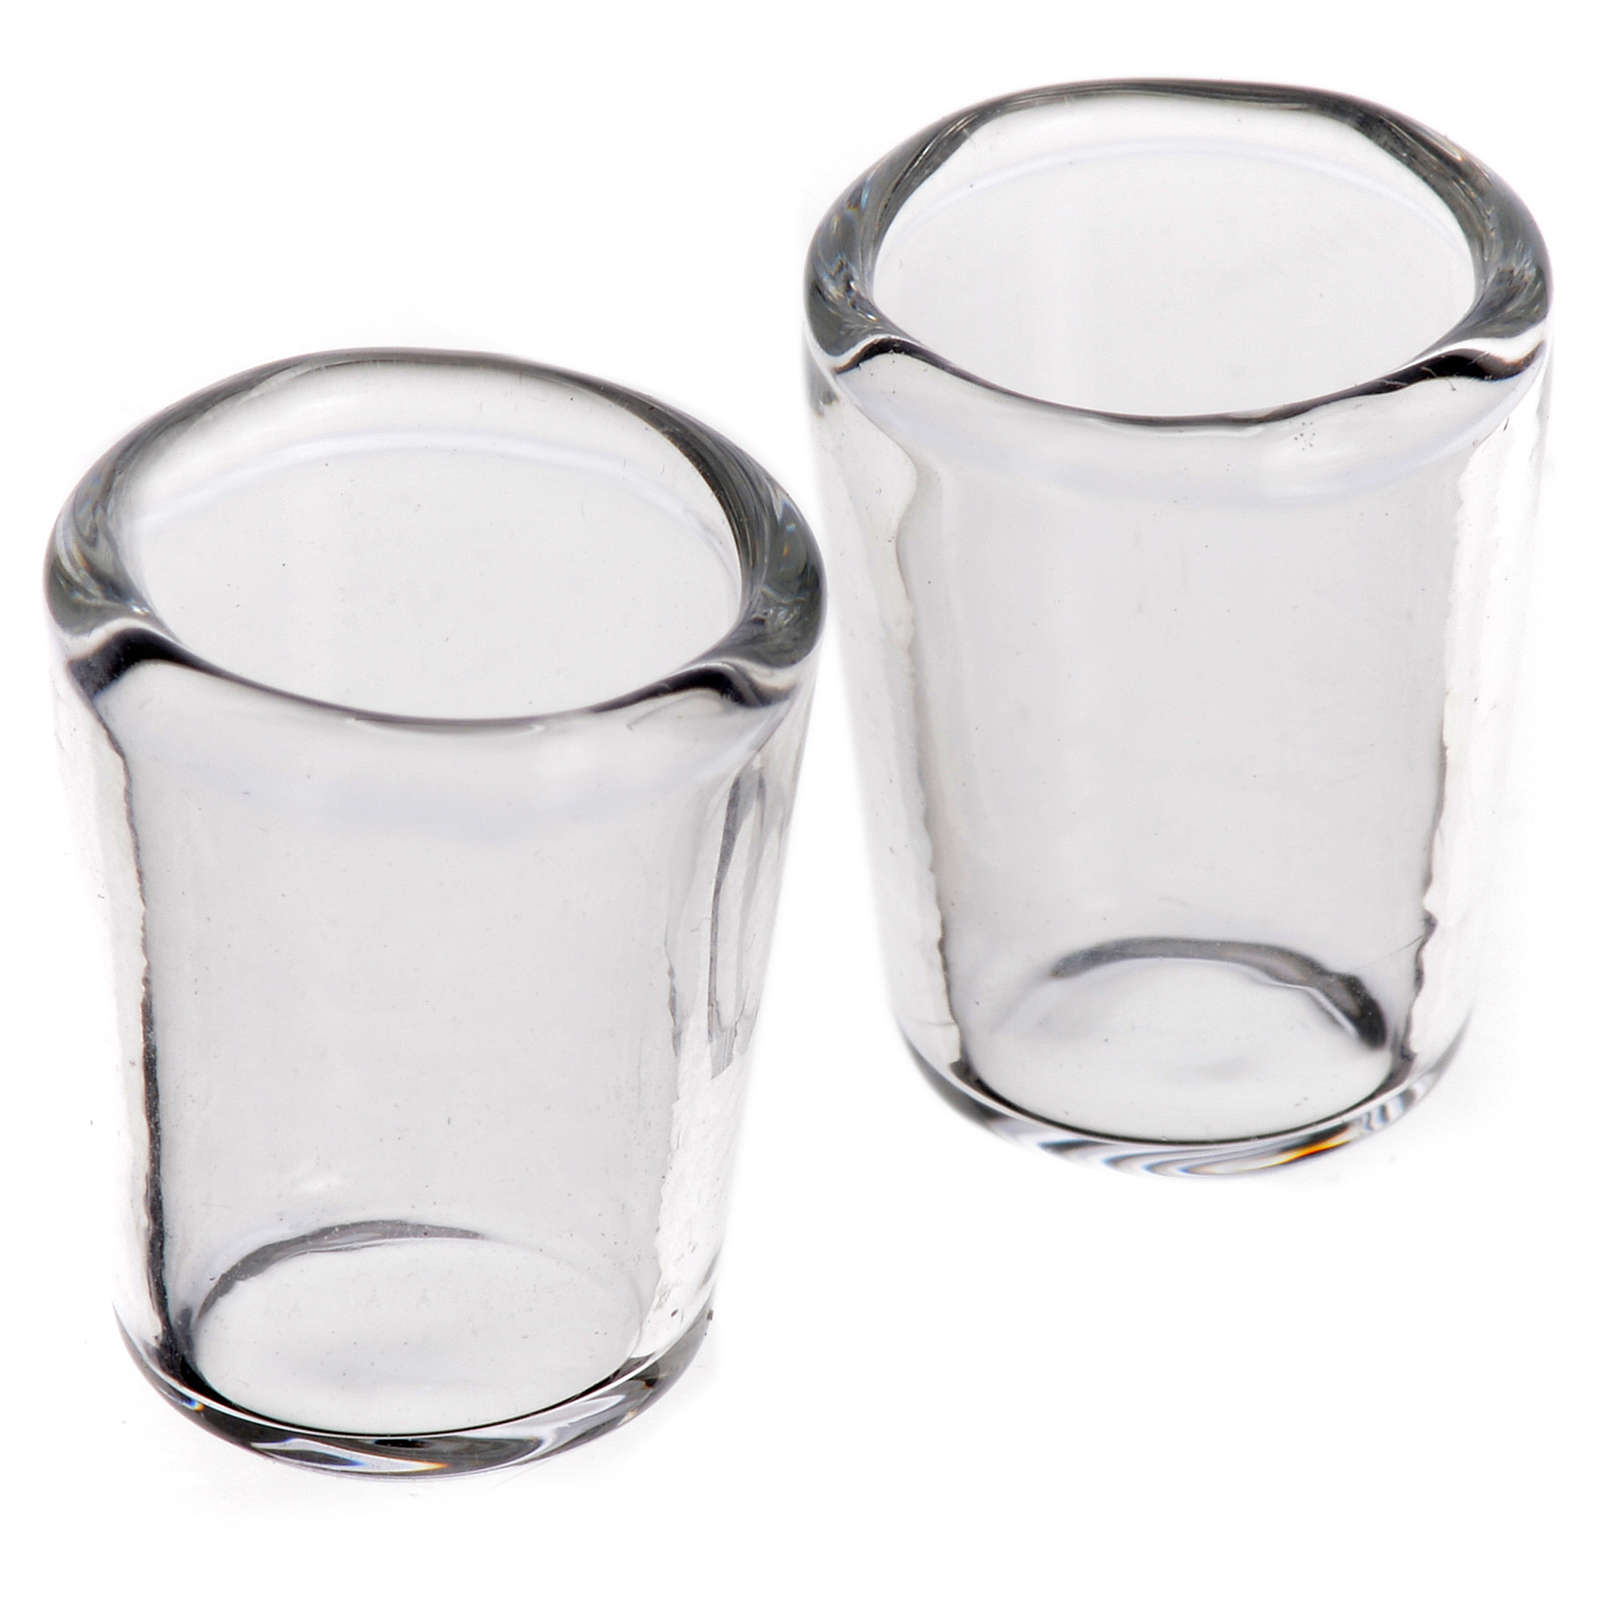 Glass cup, 1x0.8cm for nativities, set of 2 4